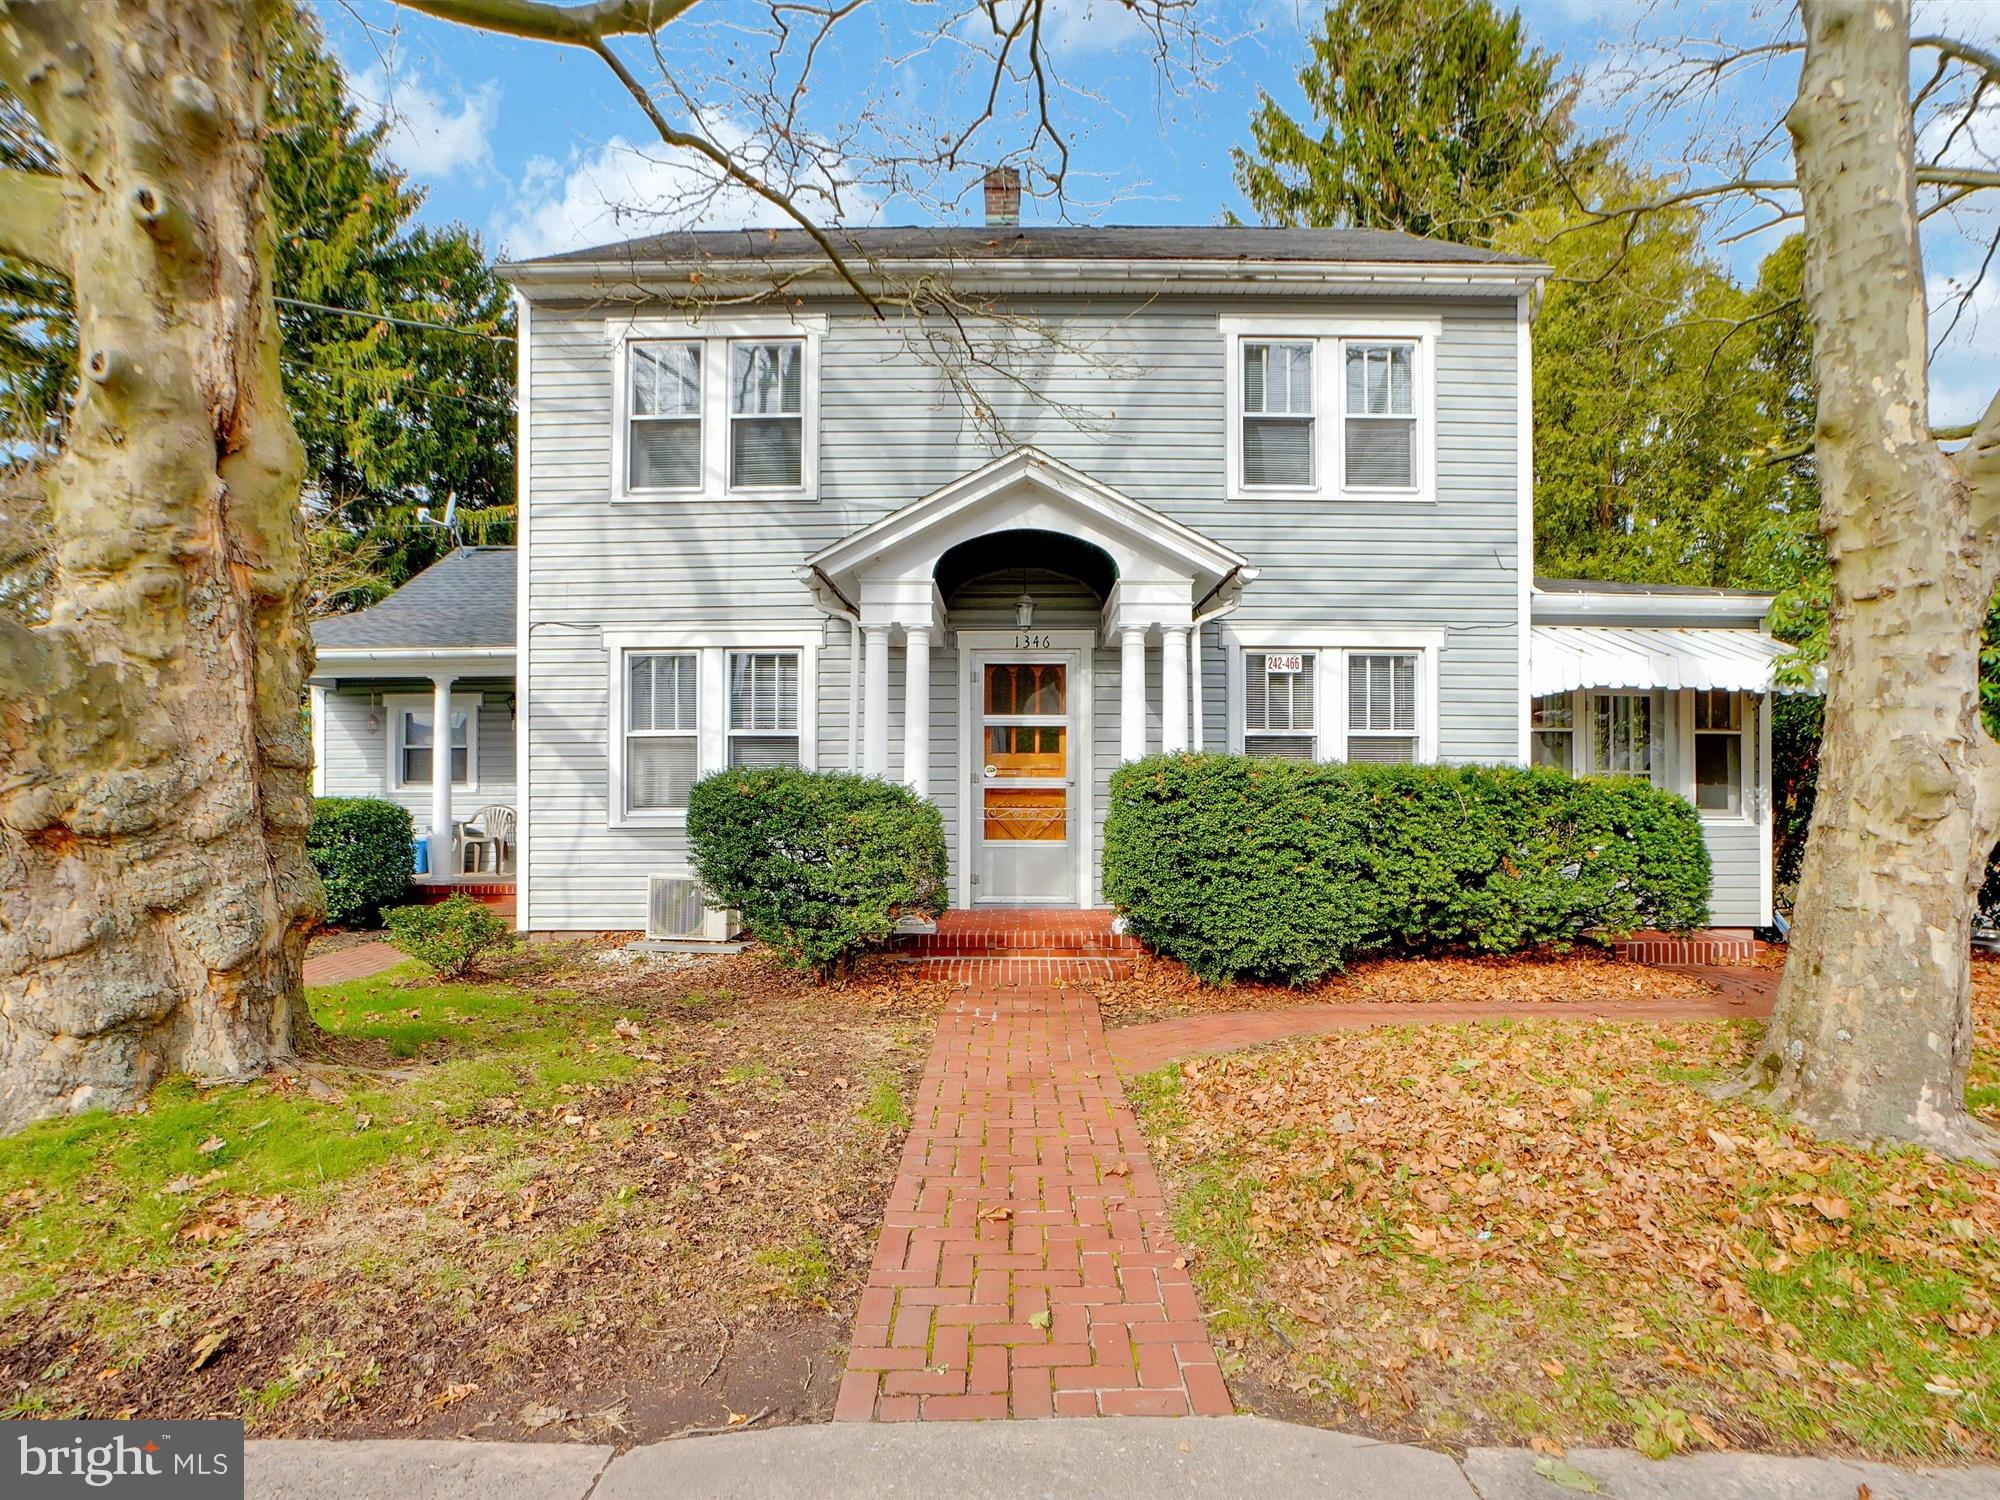 1346 W MAIN STREET, VALLEY VIEW, PA 17983